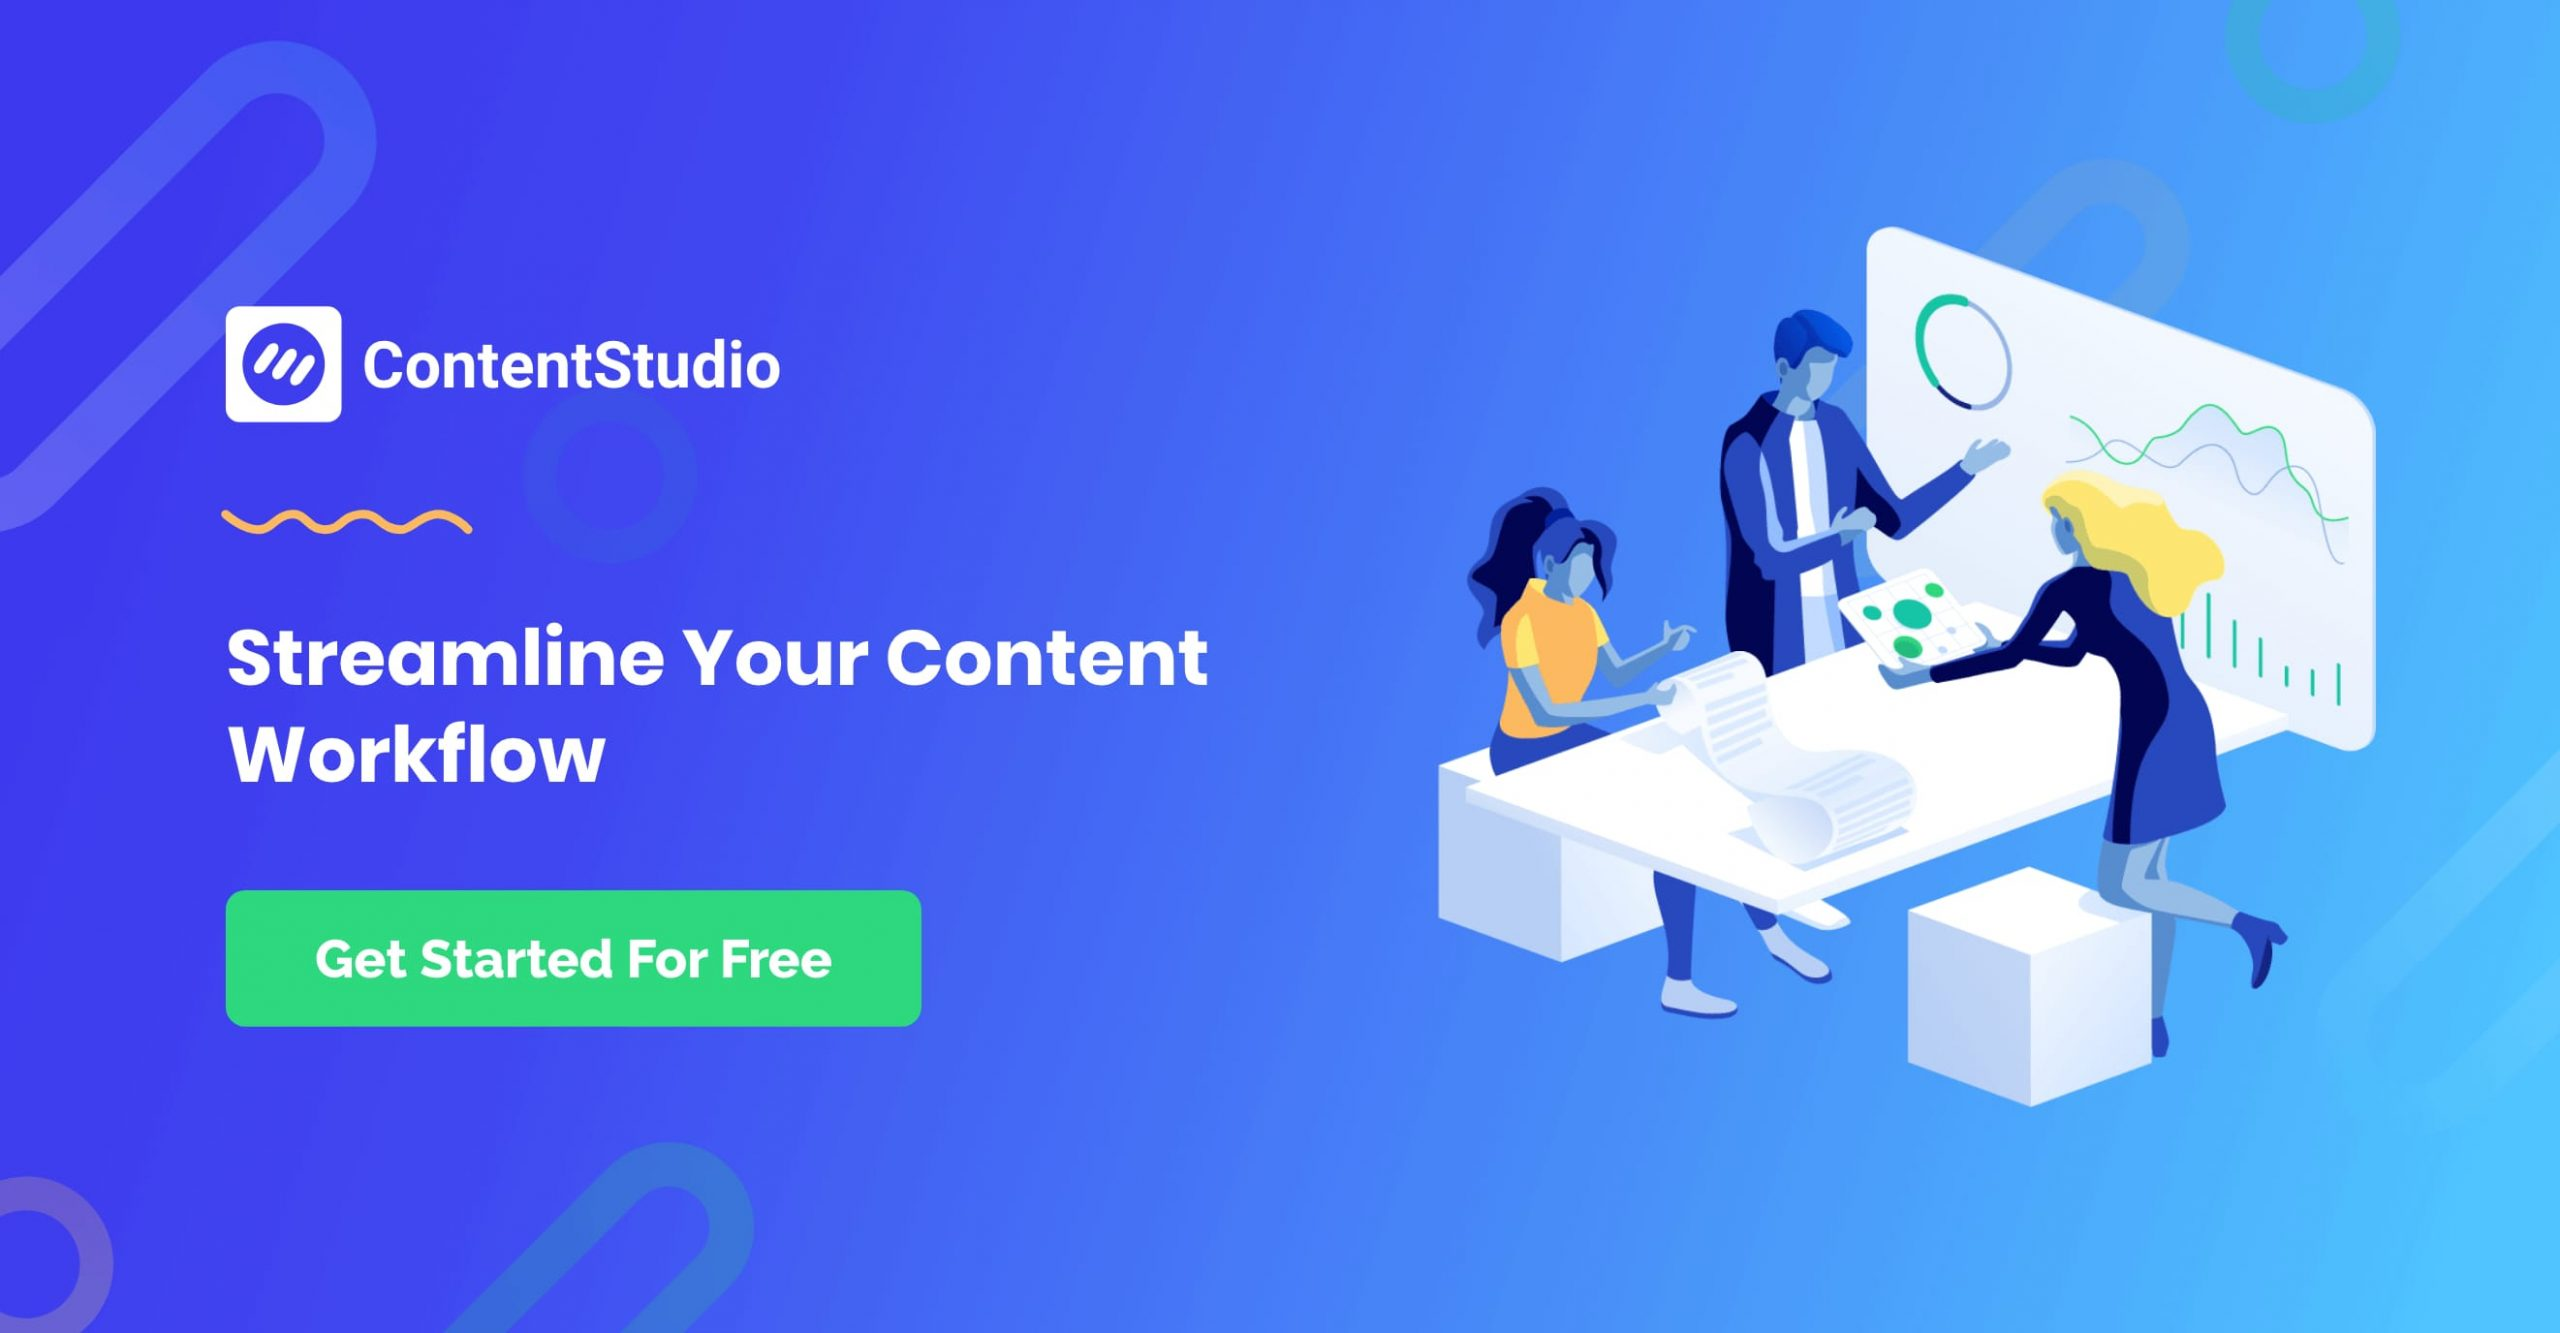 Powerful content marketing and social media management platform